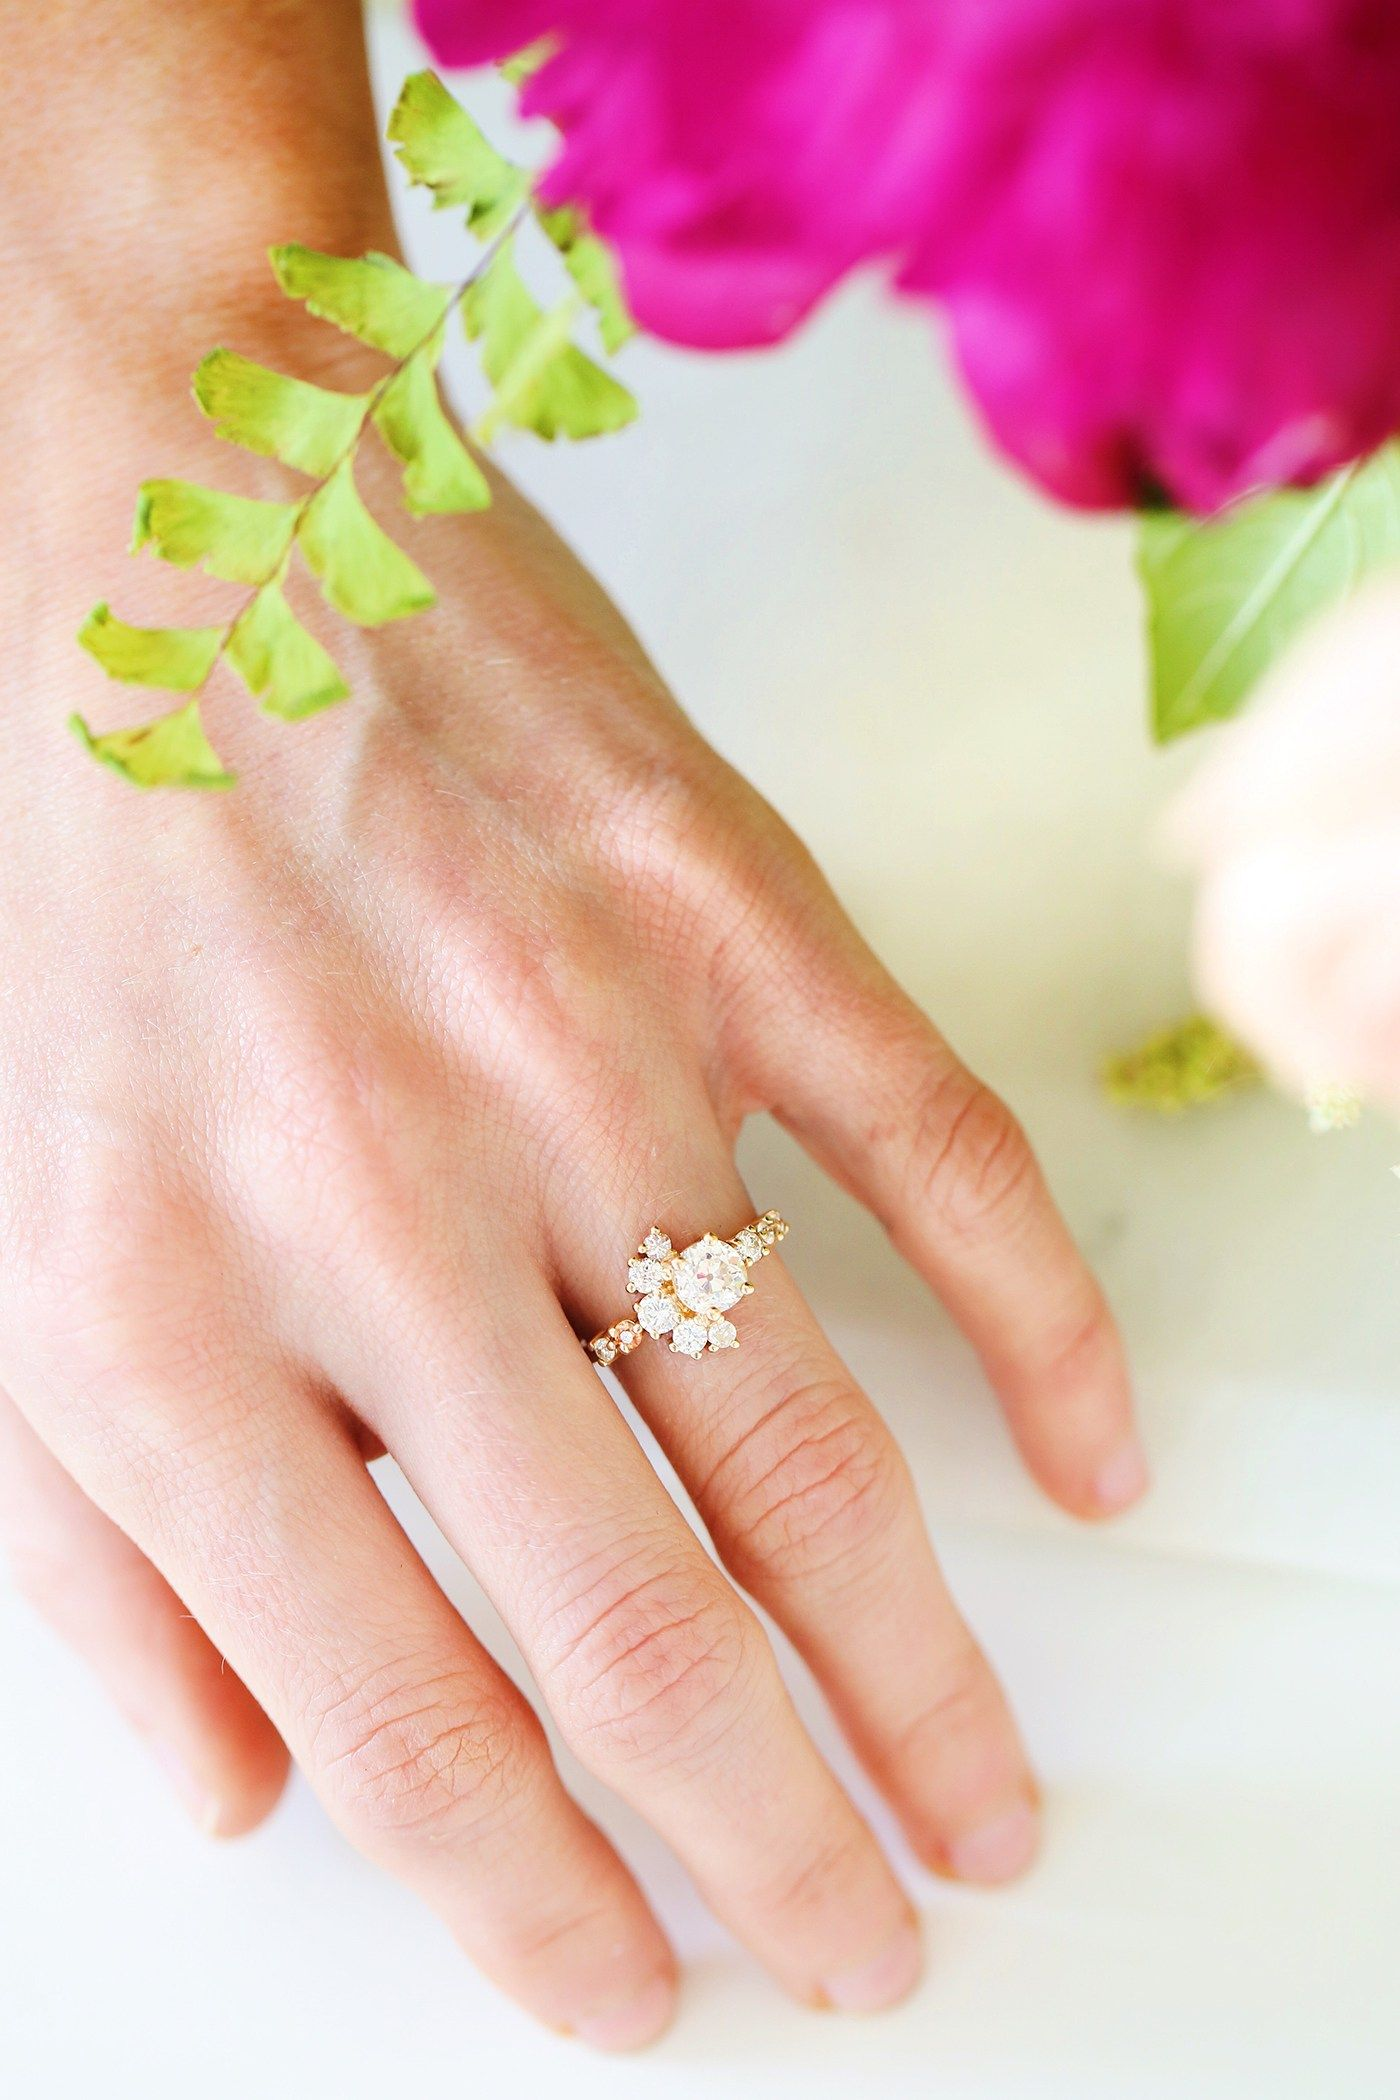 Weure engaged wedding proposals and beautiful rings